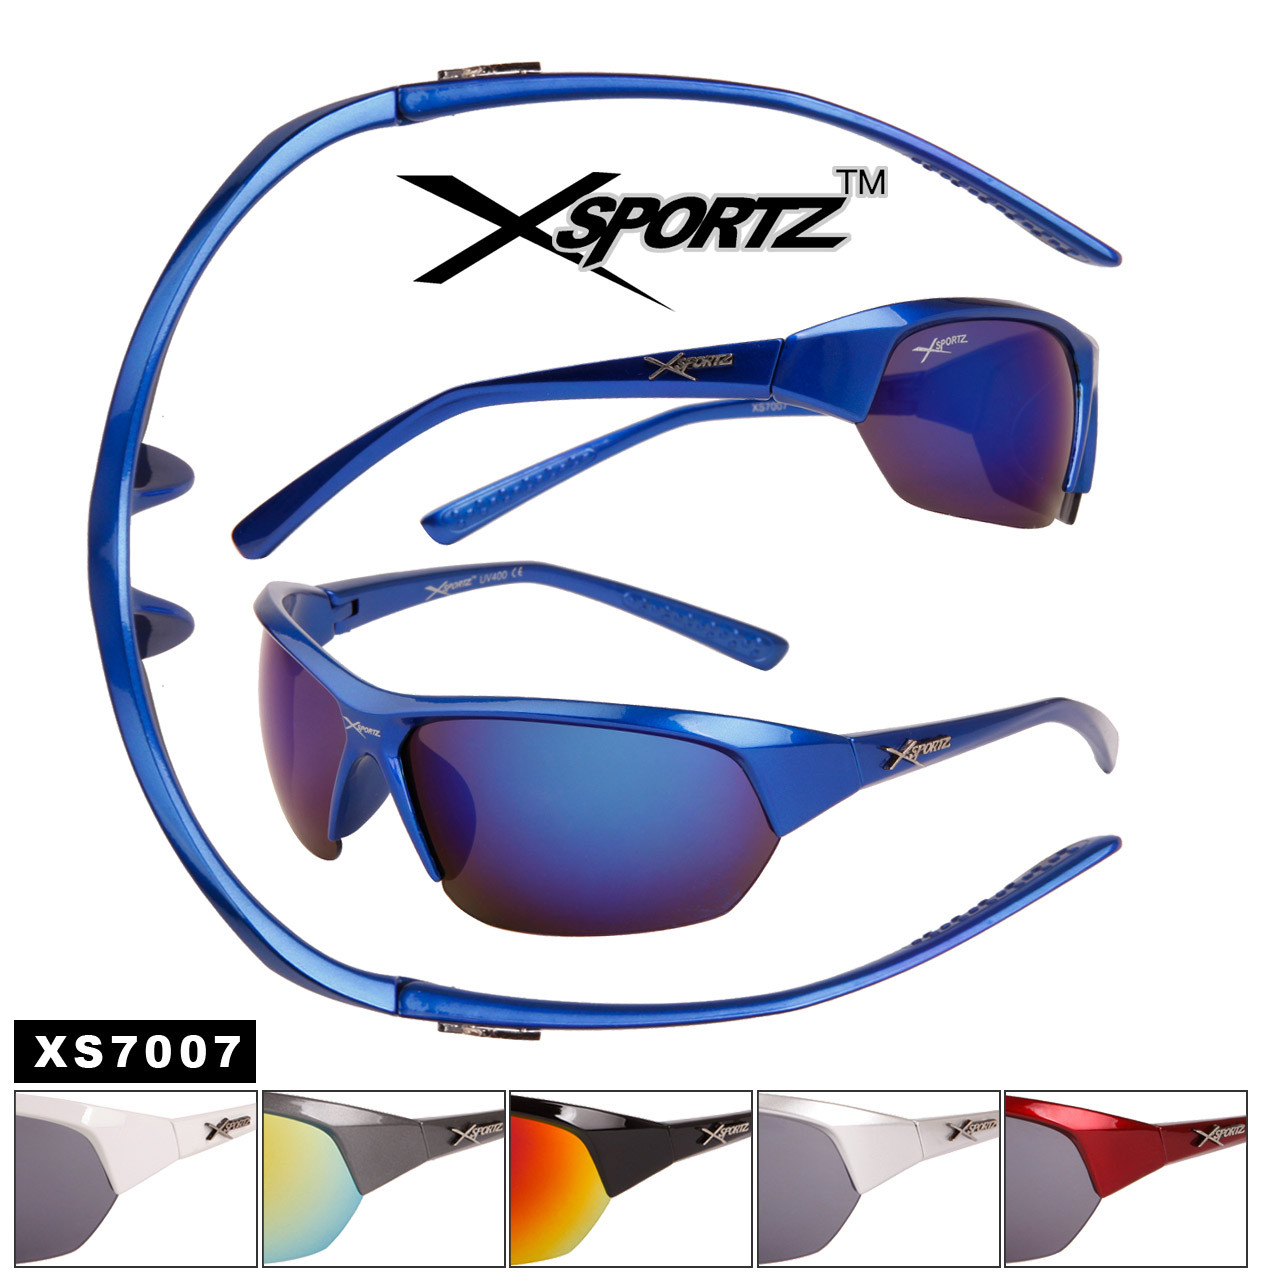 Sport Wholesale Men's Sunglasses - Style # XS7007 (Assorted Colors) (12 pcs.)